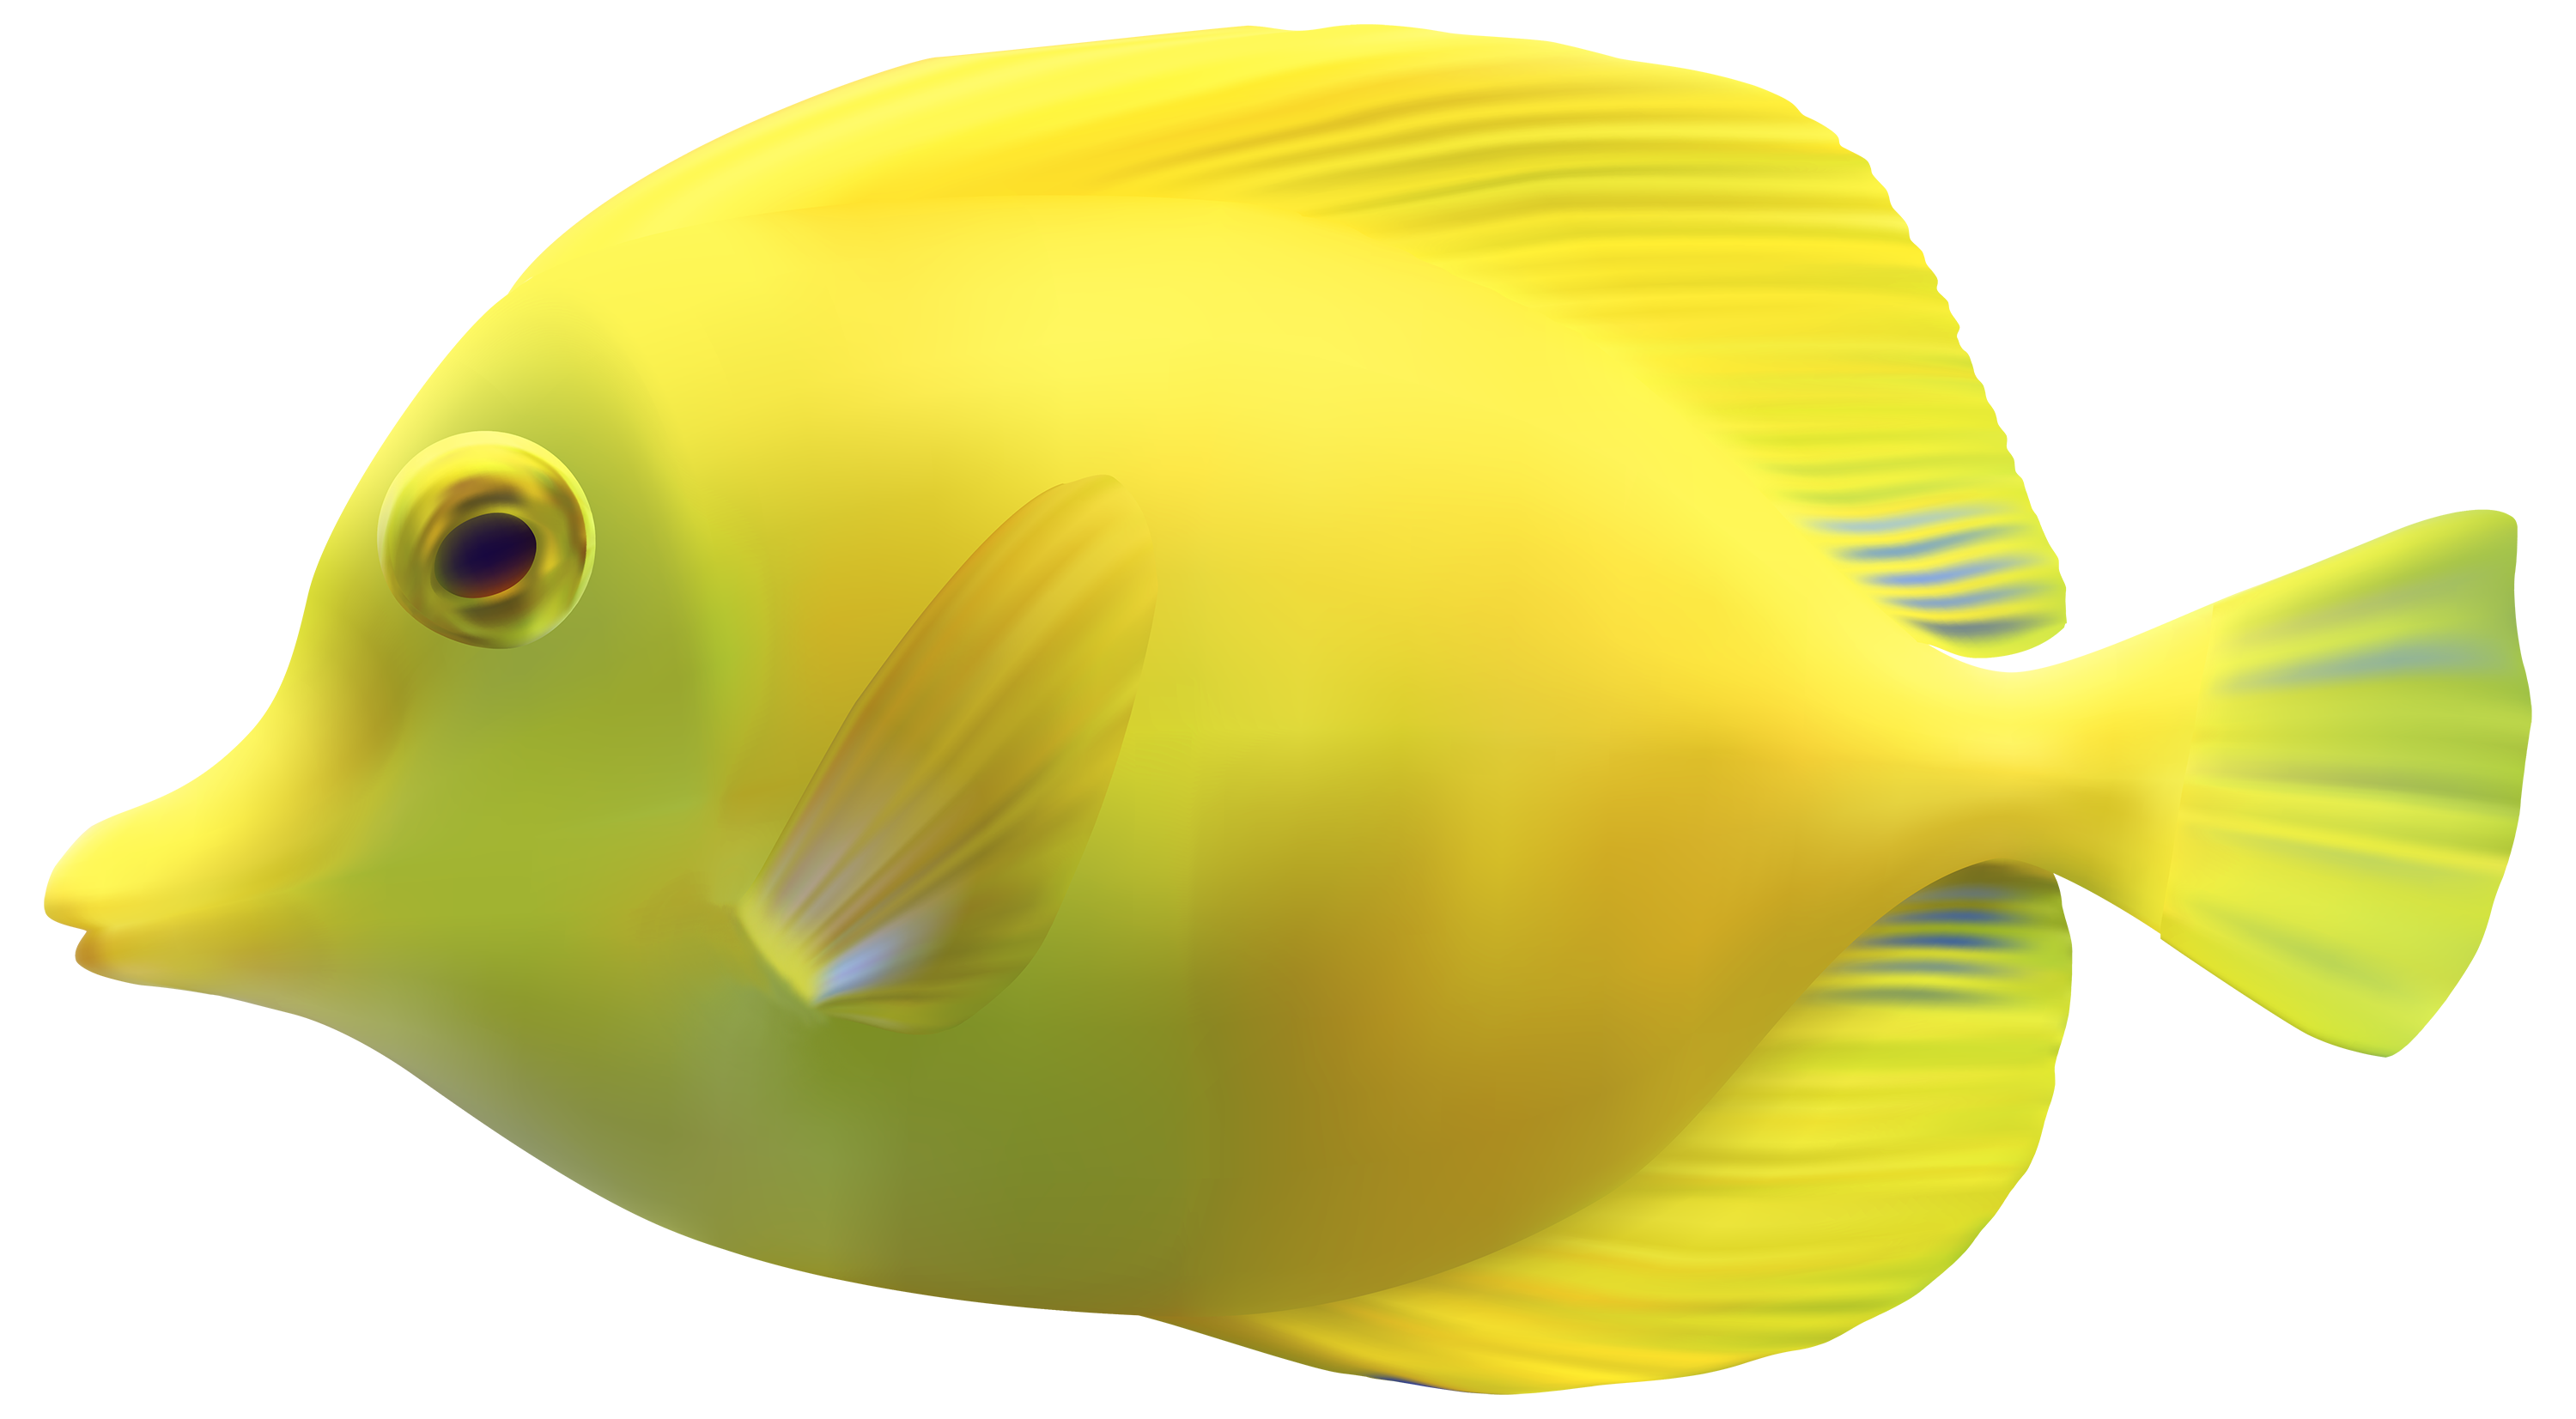 Ocean fish png. Transparent images pluspng image